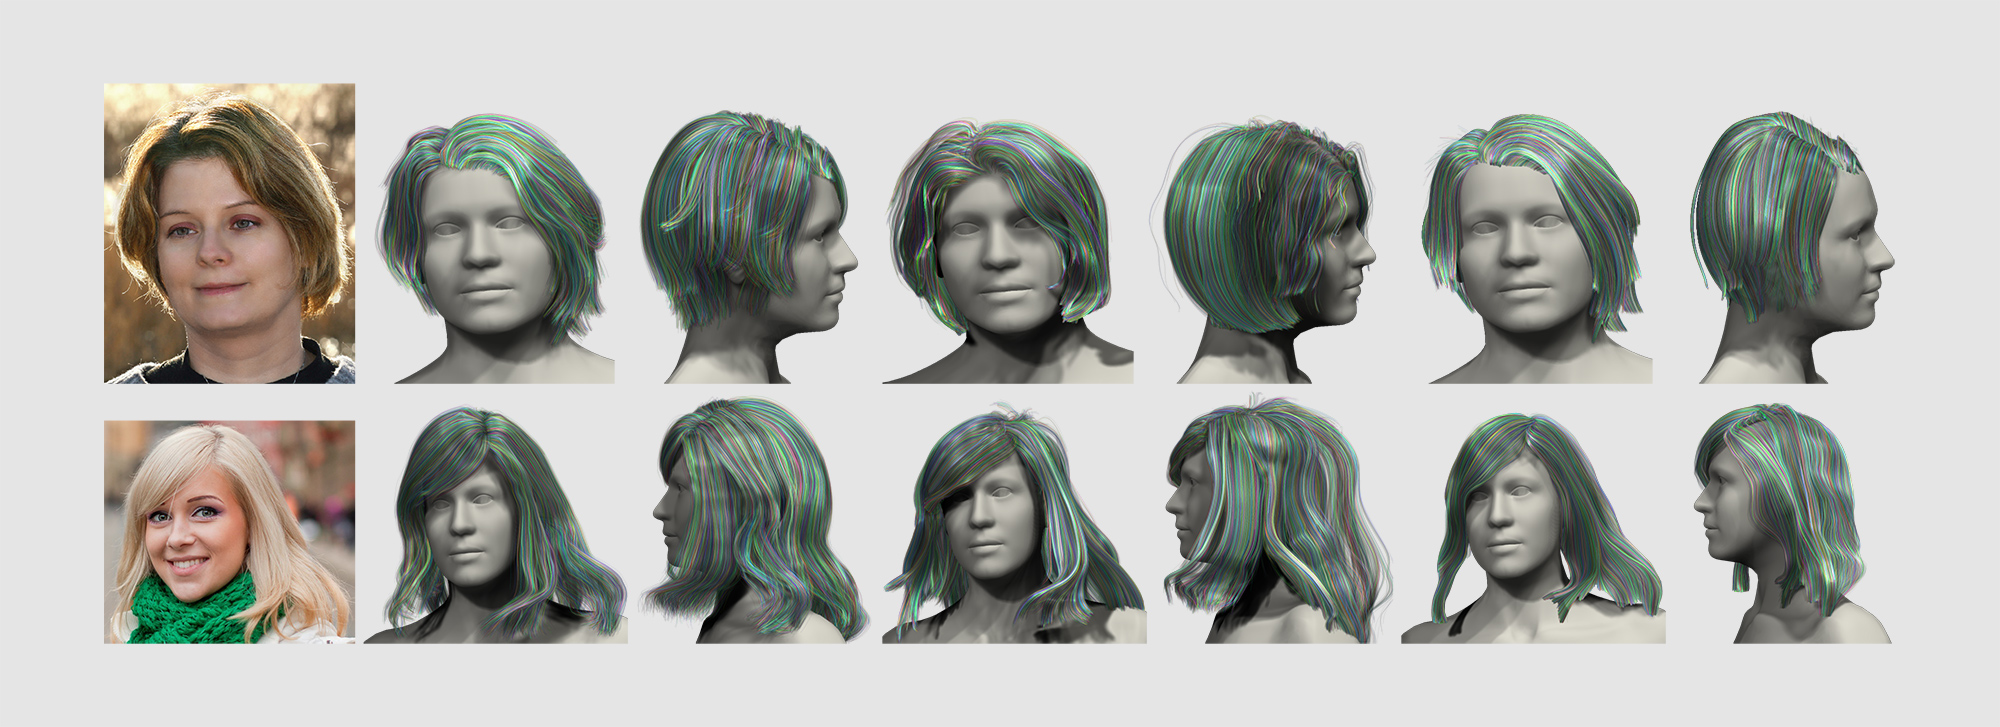 3061157-inline-1-the-future-of-salons-is-this-algorithm-that-turns-photos-into-hairstyles